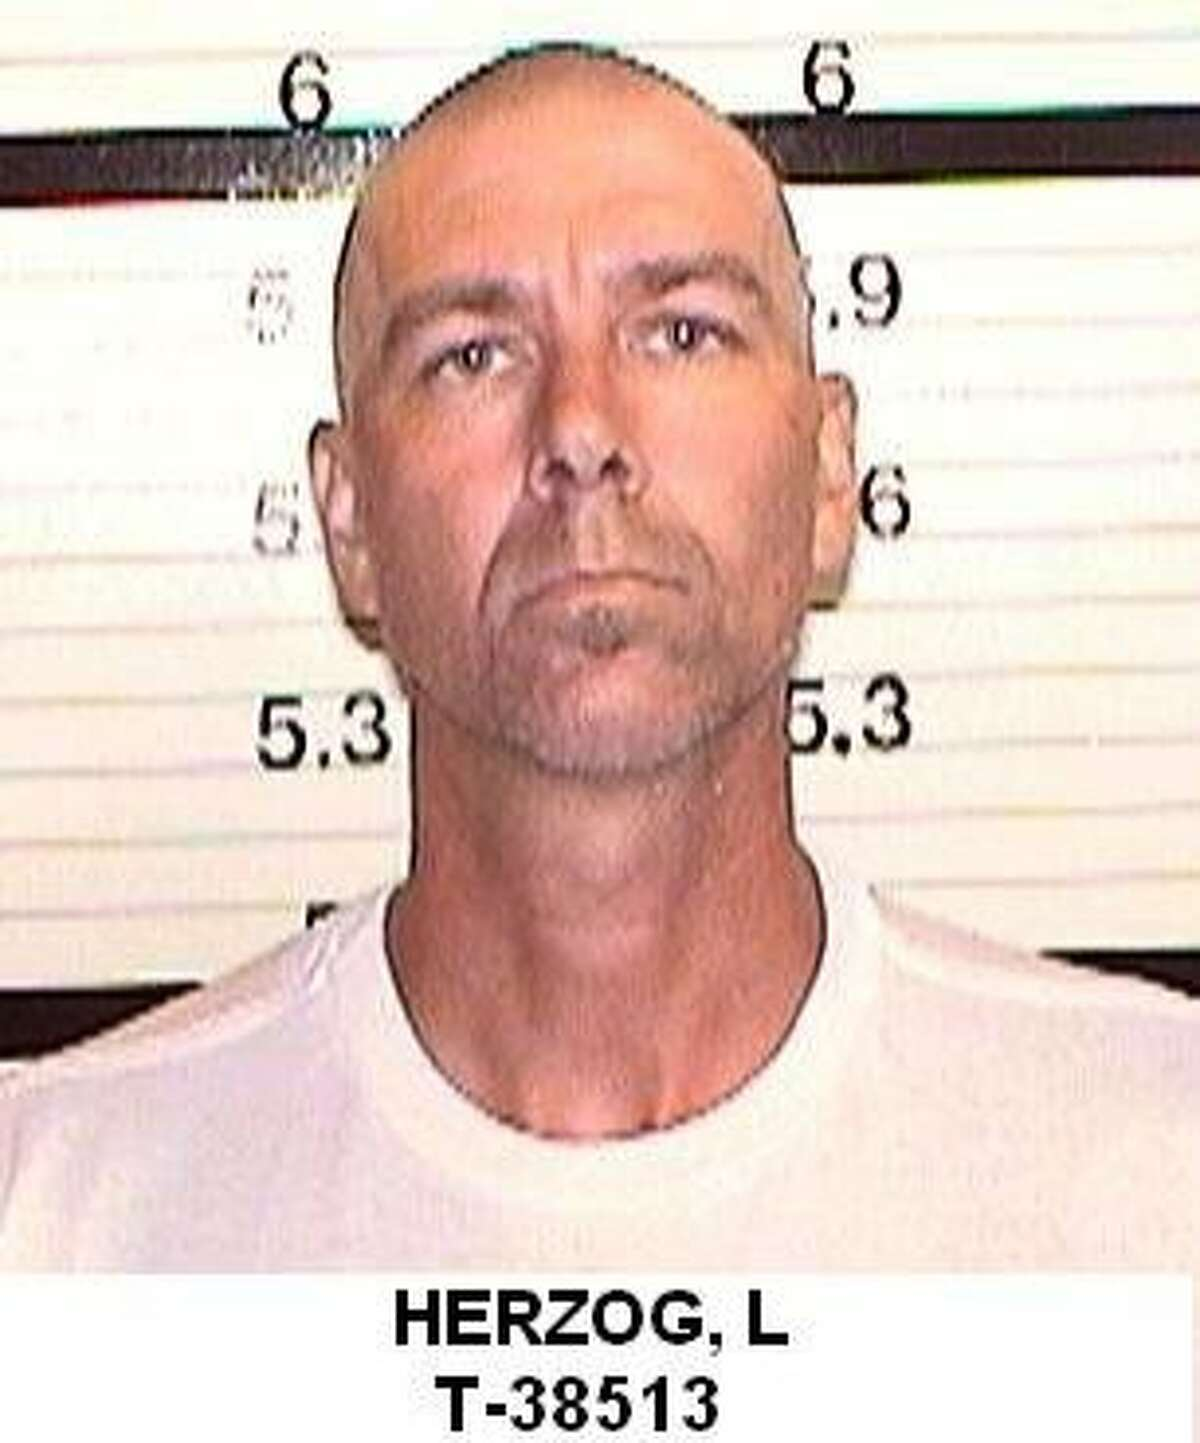 """In this undated file photo provided by the California Department of Corrections shows Loren Joseph Herzog. Authorities say Herzog and Wesley Shermantine, dubbed the """"Speed Freak Killers,"""" wantonly murdered many throughout California's rural Central Valley before their arrest in 1999. Now, motivated by a bounty hunter's promise to pay, one of those convicted killer's is breaking his long-held secret and leading investigators to burial sites that have yielded hundreds of human bones."""